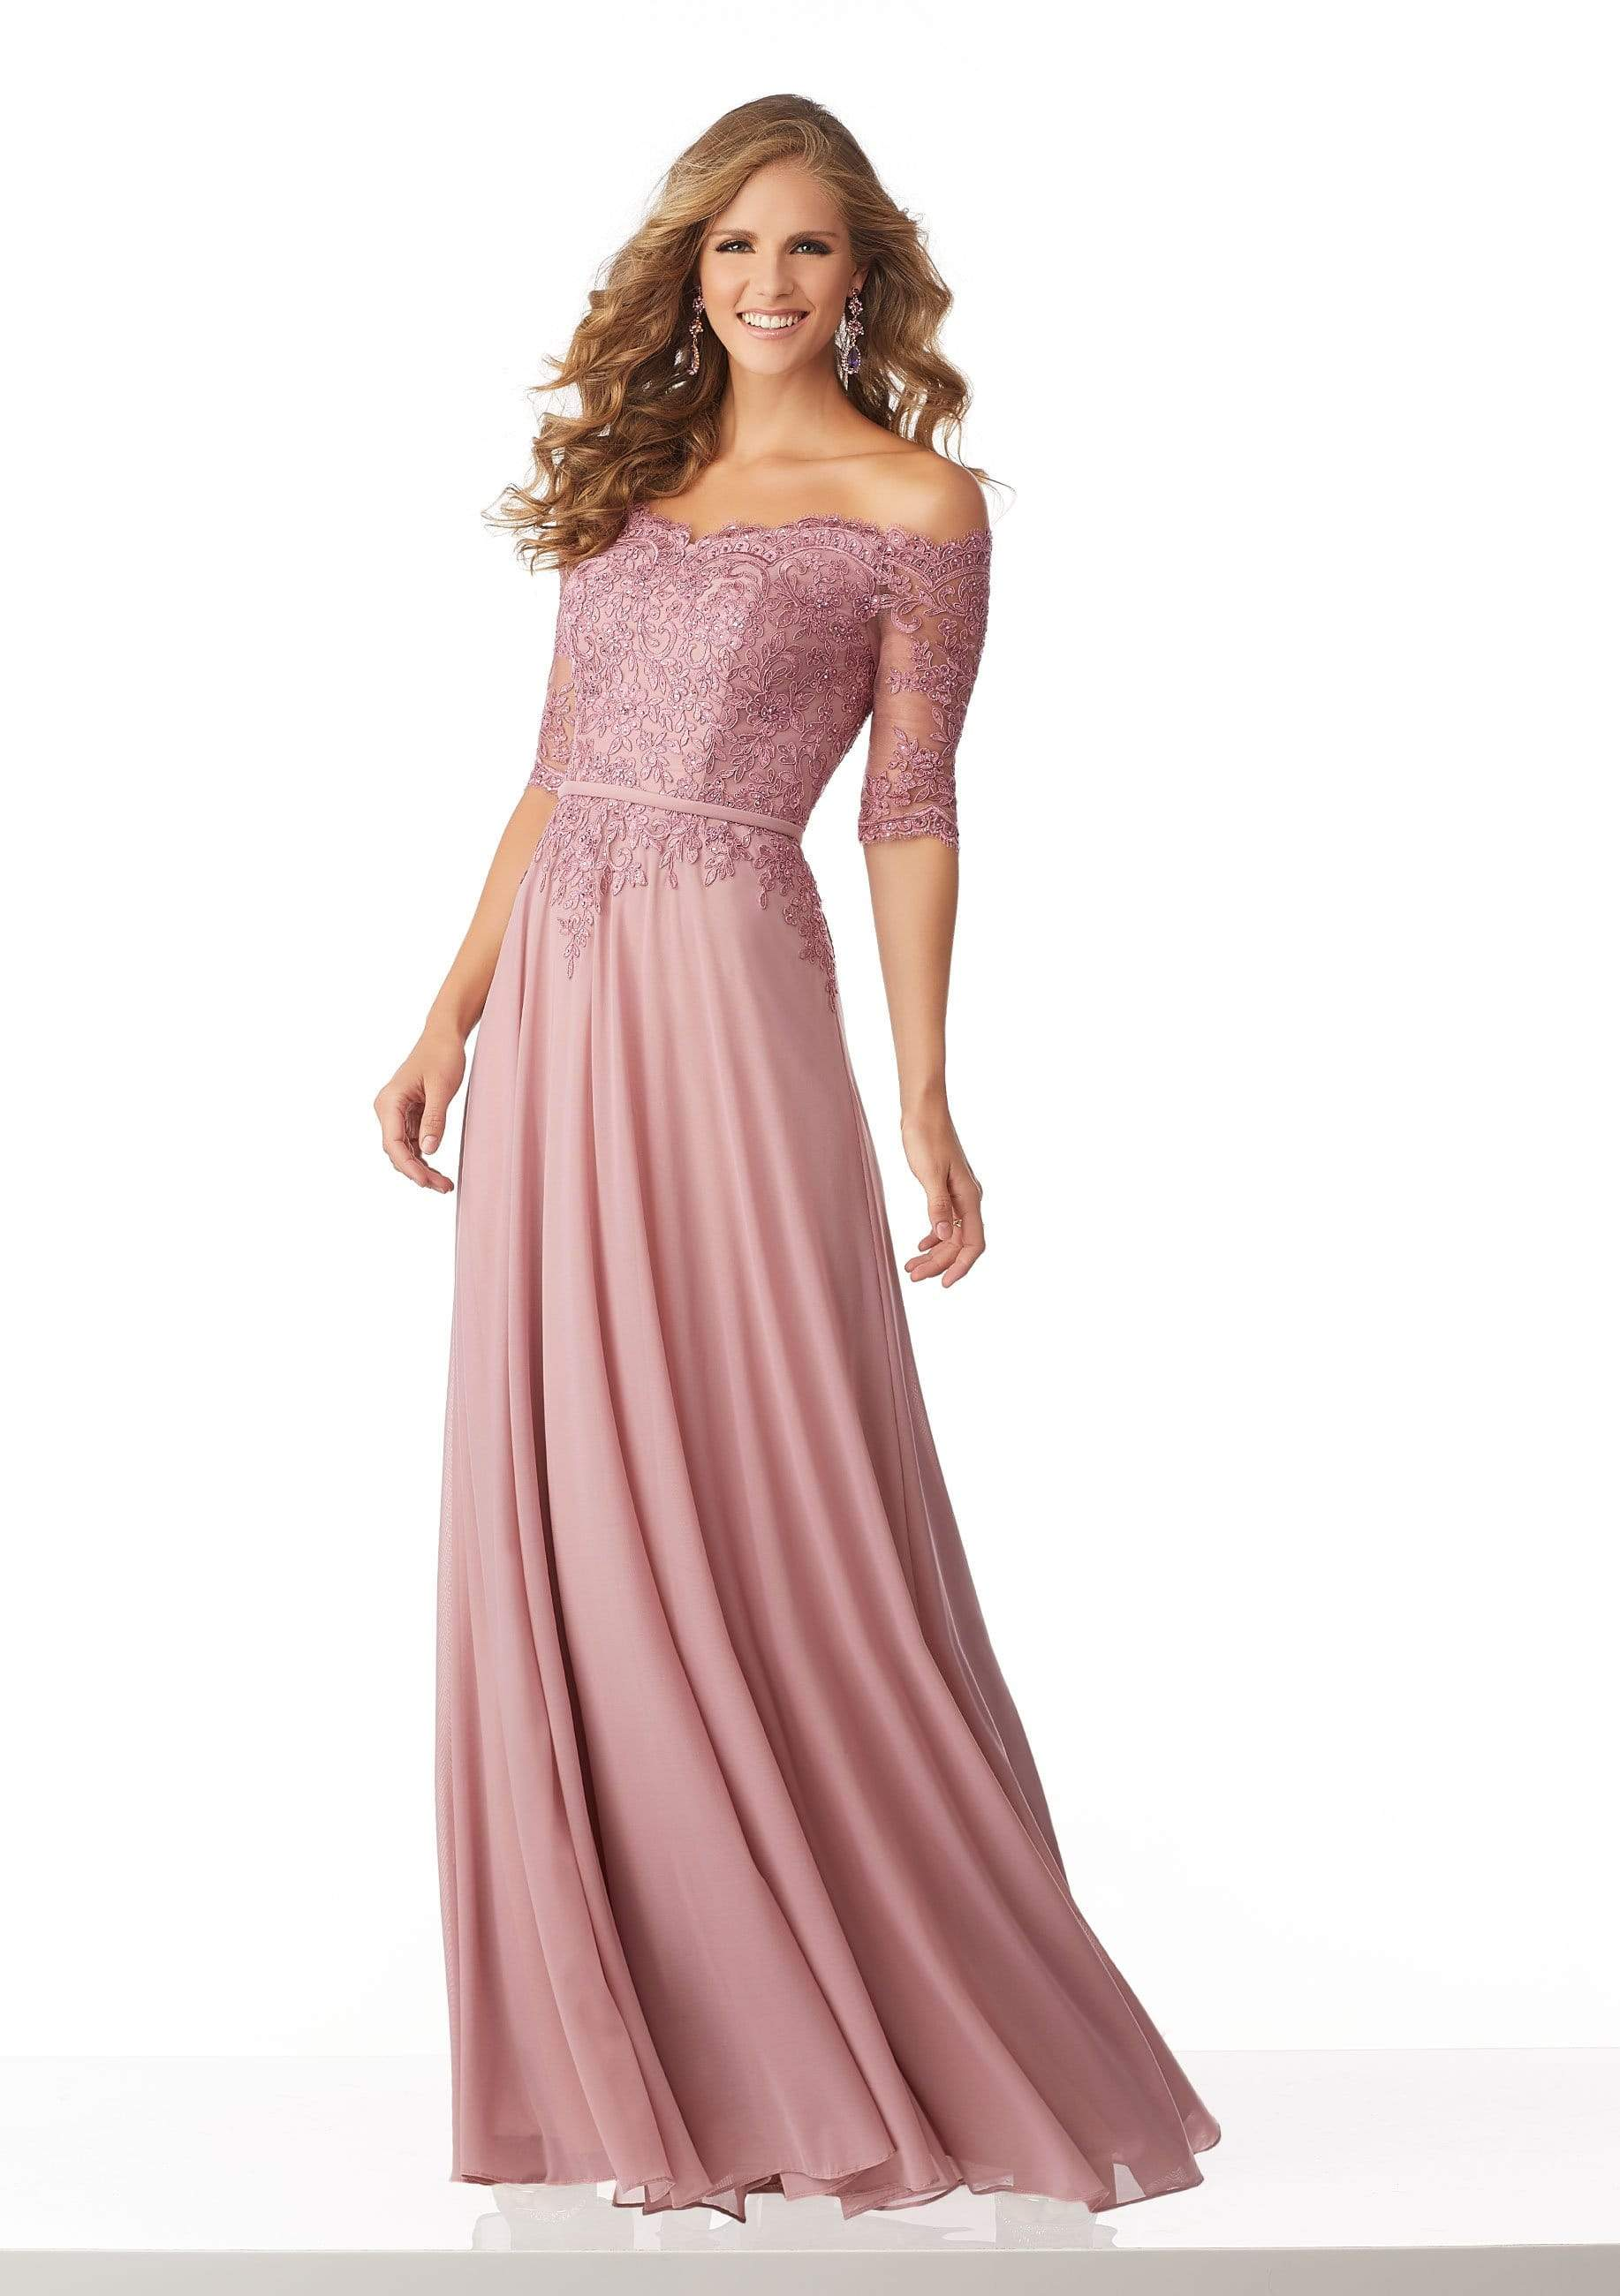 MGNY By Mori Lee - 71822 Beaded Lace Off-Shoulder A-Line Gown Mother of the Bride Dresses 0 / Rose